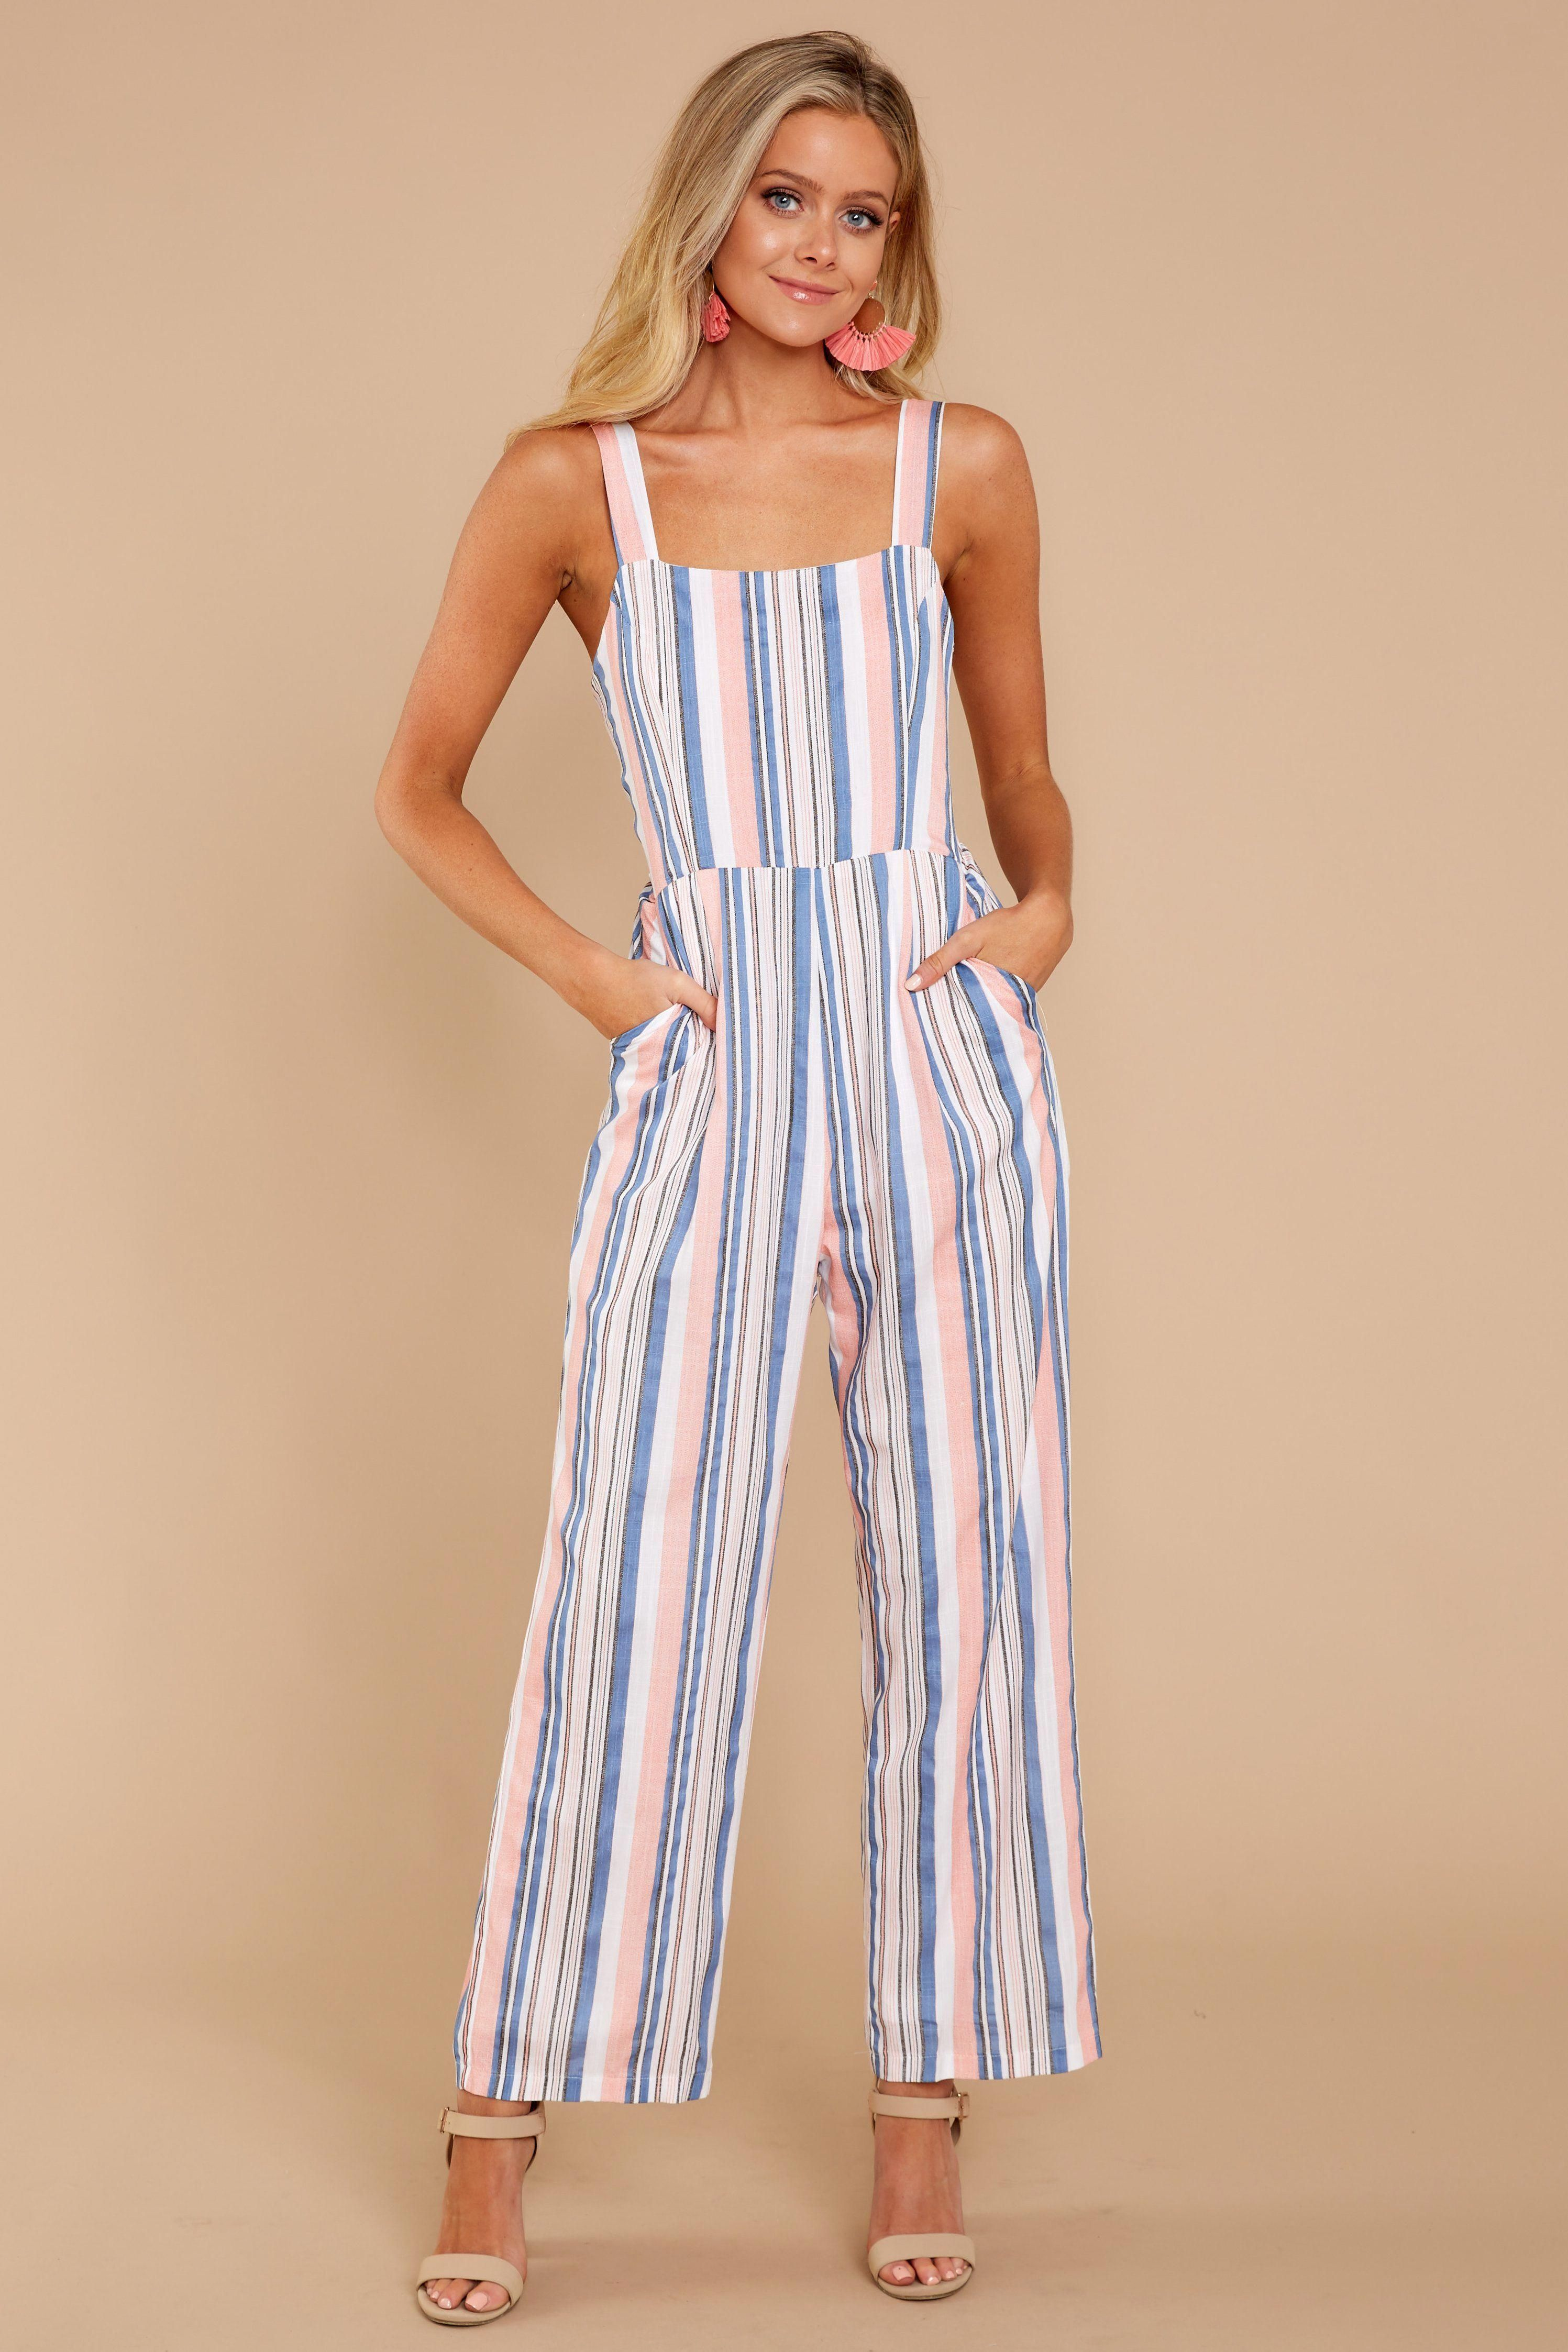 4017fca950c Trendy Pink Multi Striped Jumpsuit - Cute Striped Jumpsuit - Jumpsuit -   46.00 – Red Dress Boutique